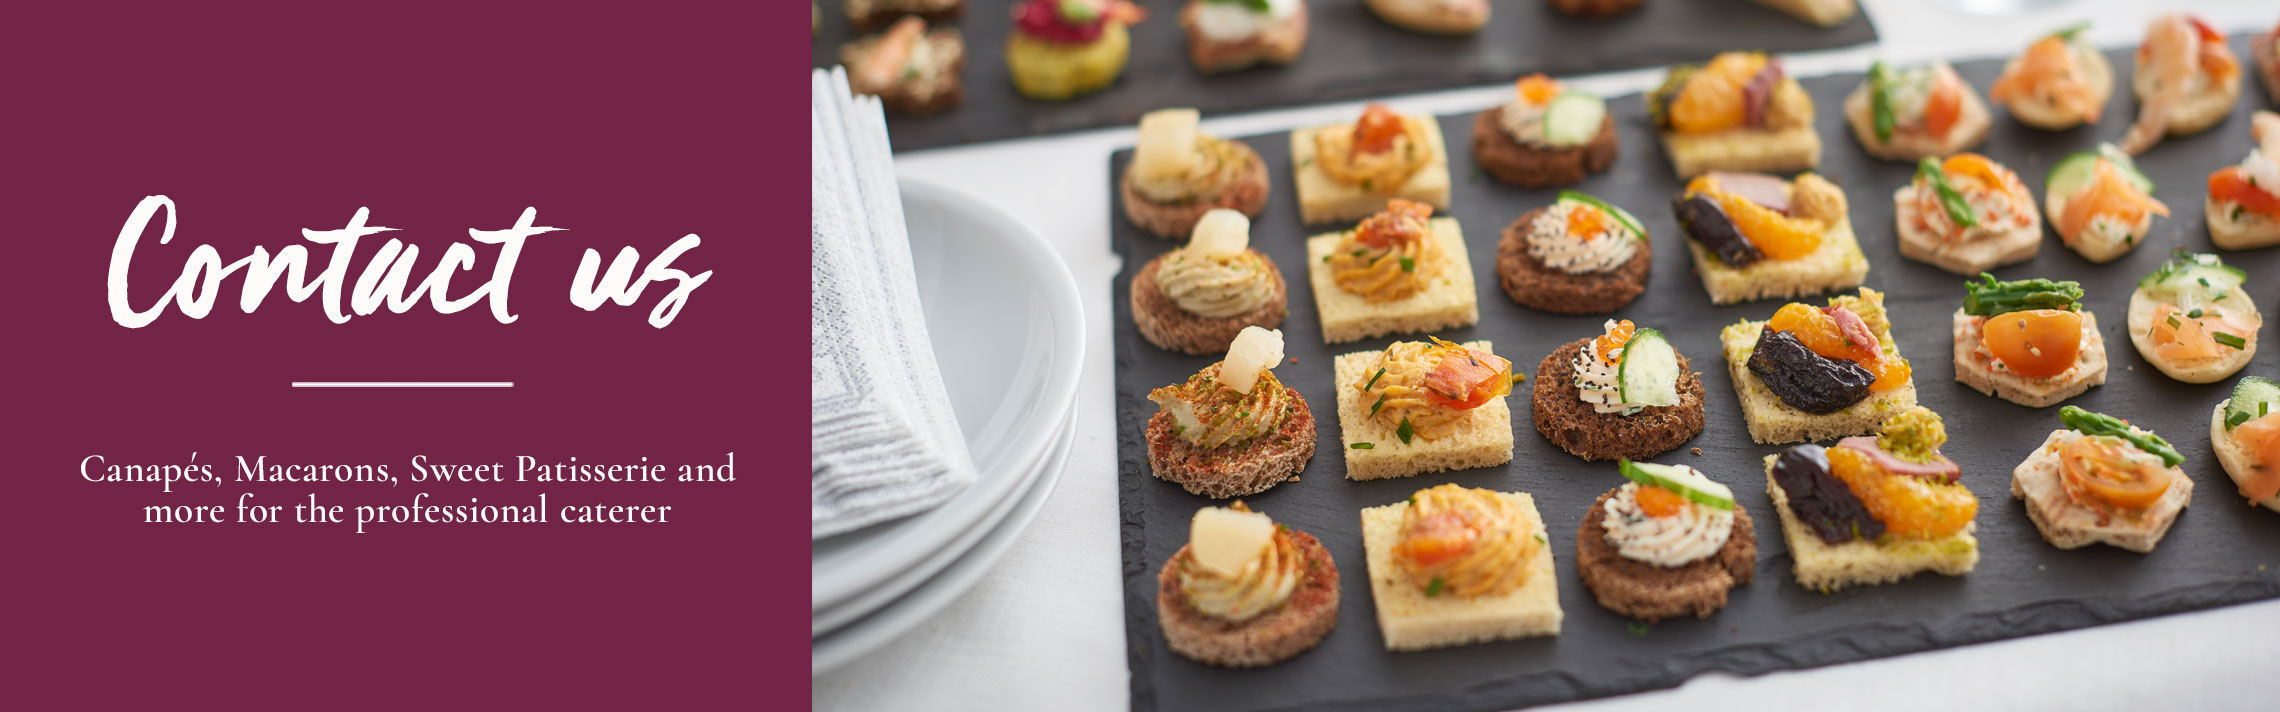 Canapes Catering - Tipiak Foodservice - Canapes, Macarons, Sweet Patisserie